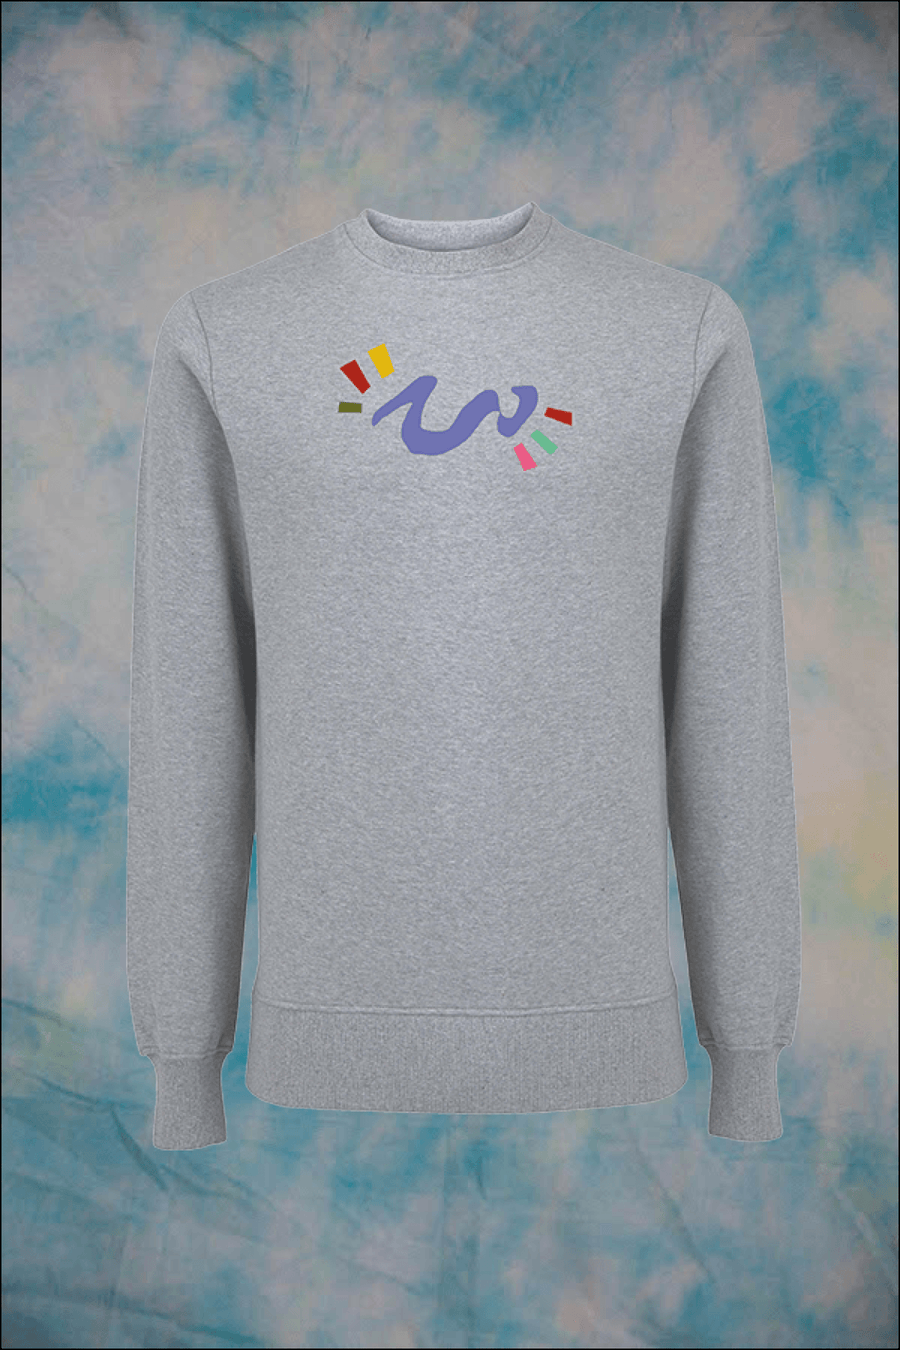 Unisex Abstract Scribble Organic Cotton Sweatshirt